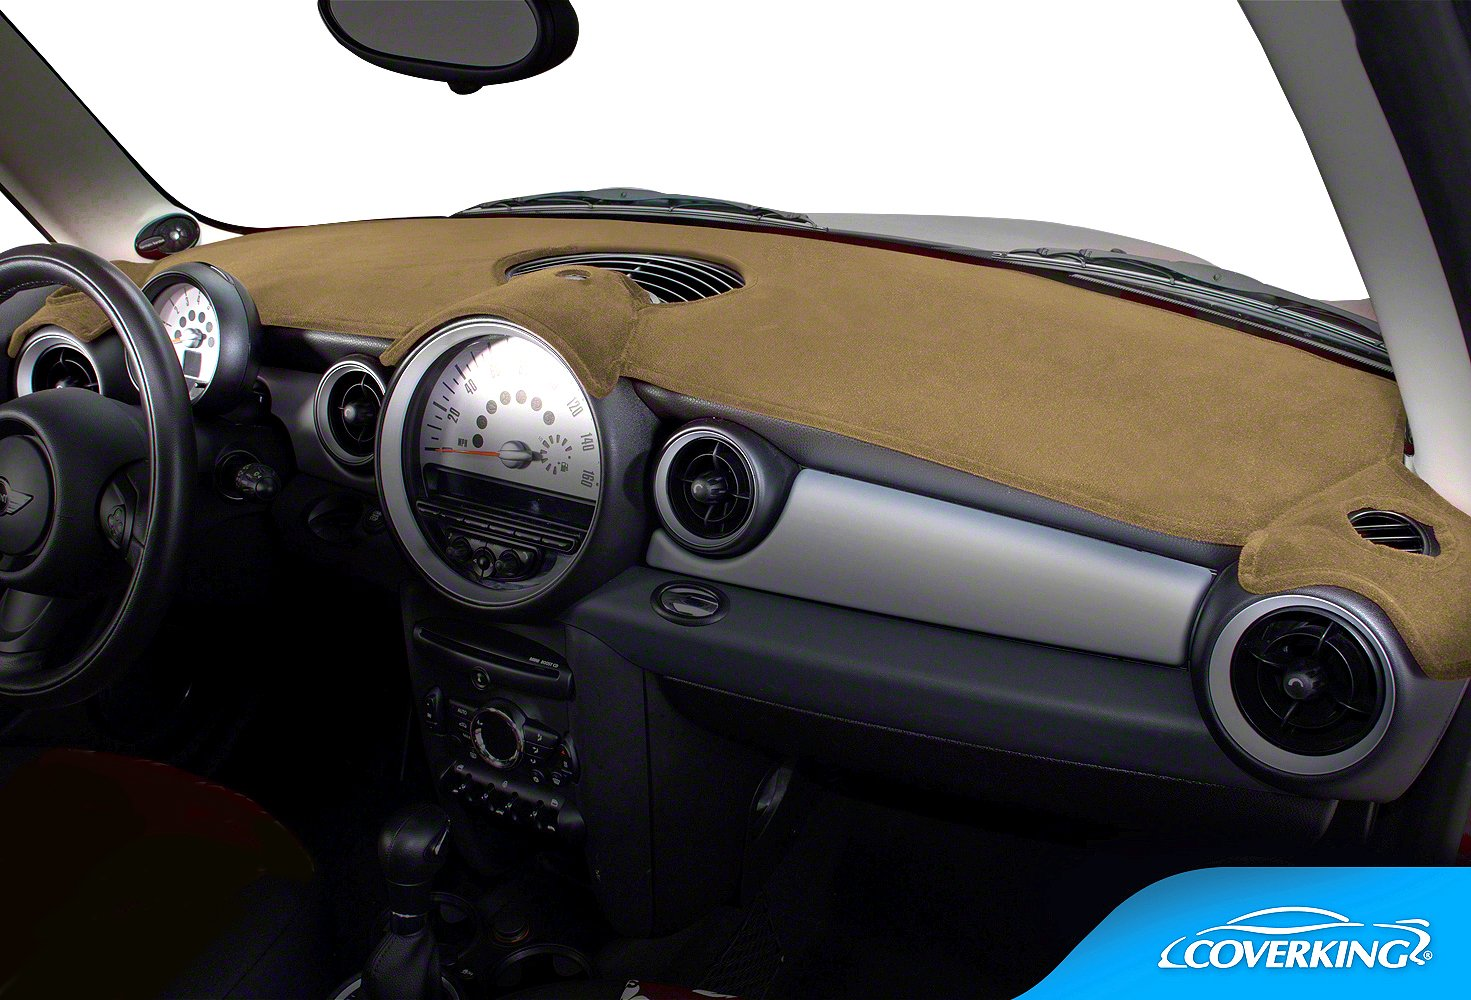 Coverking Velour Dash Cover - Free Shipping & Price Match ...